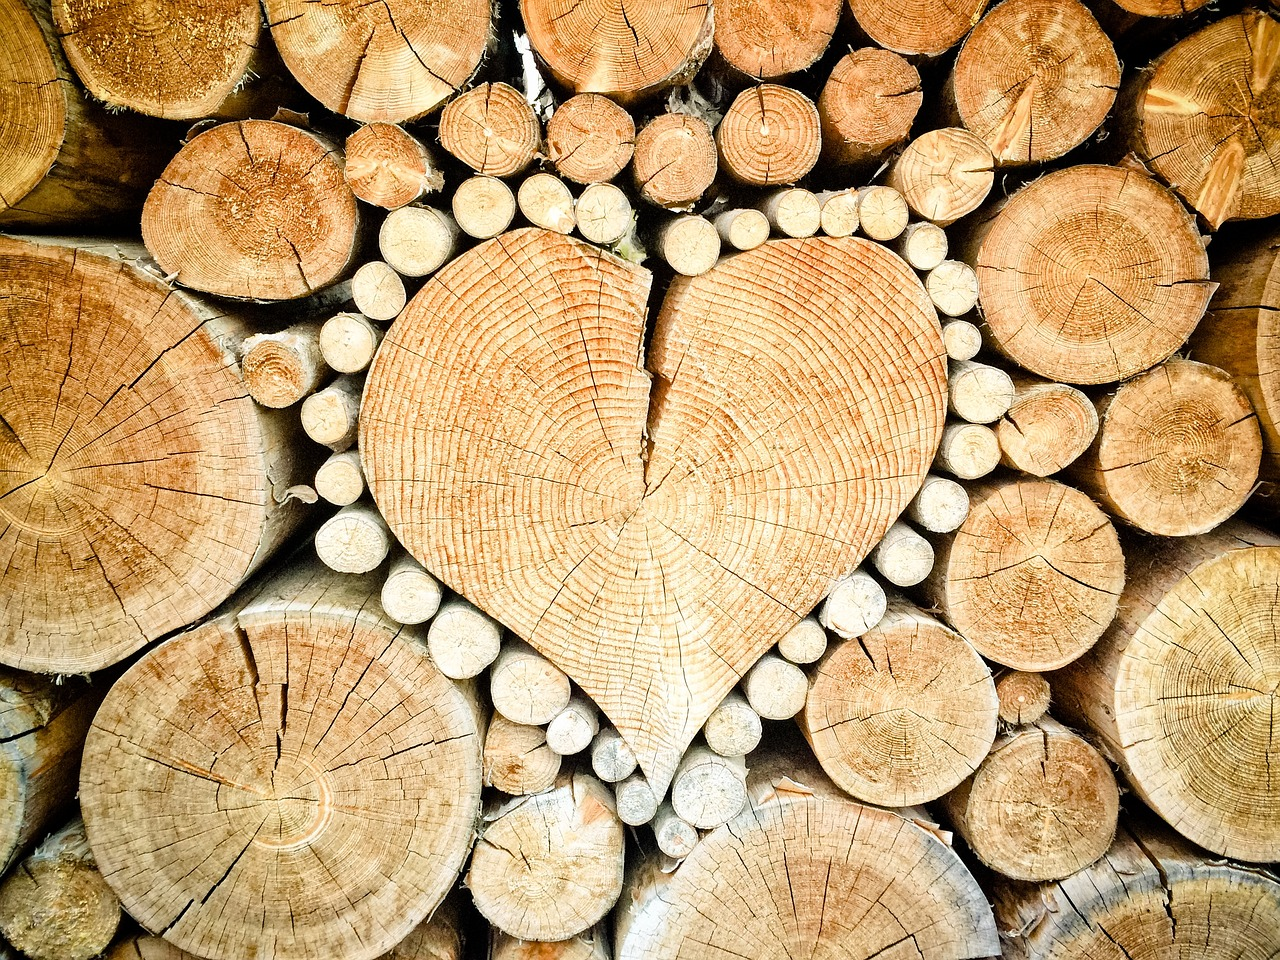 Timber stapled in the shape of a heart. Photo.